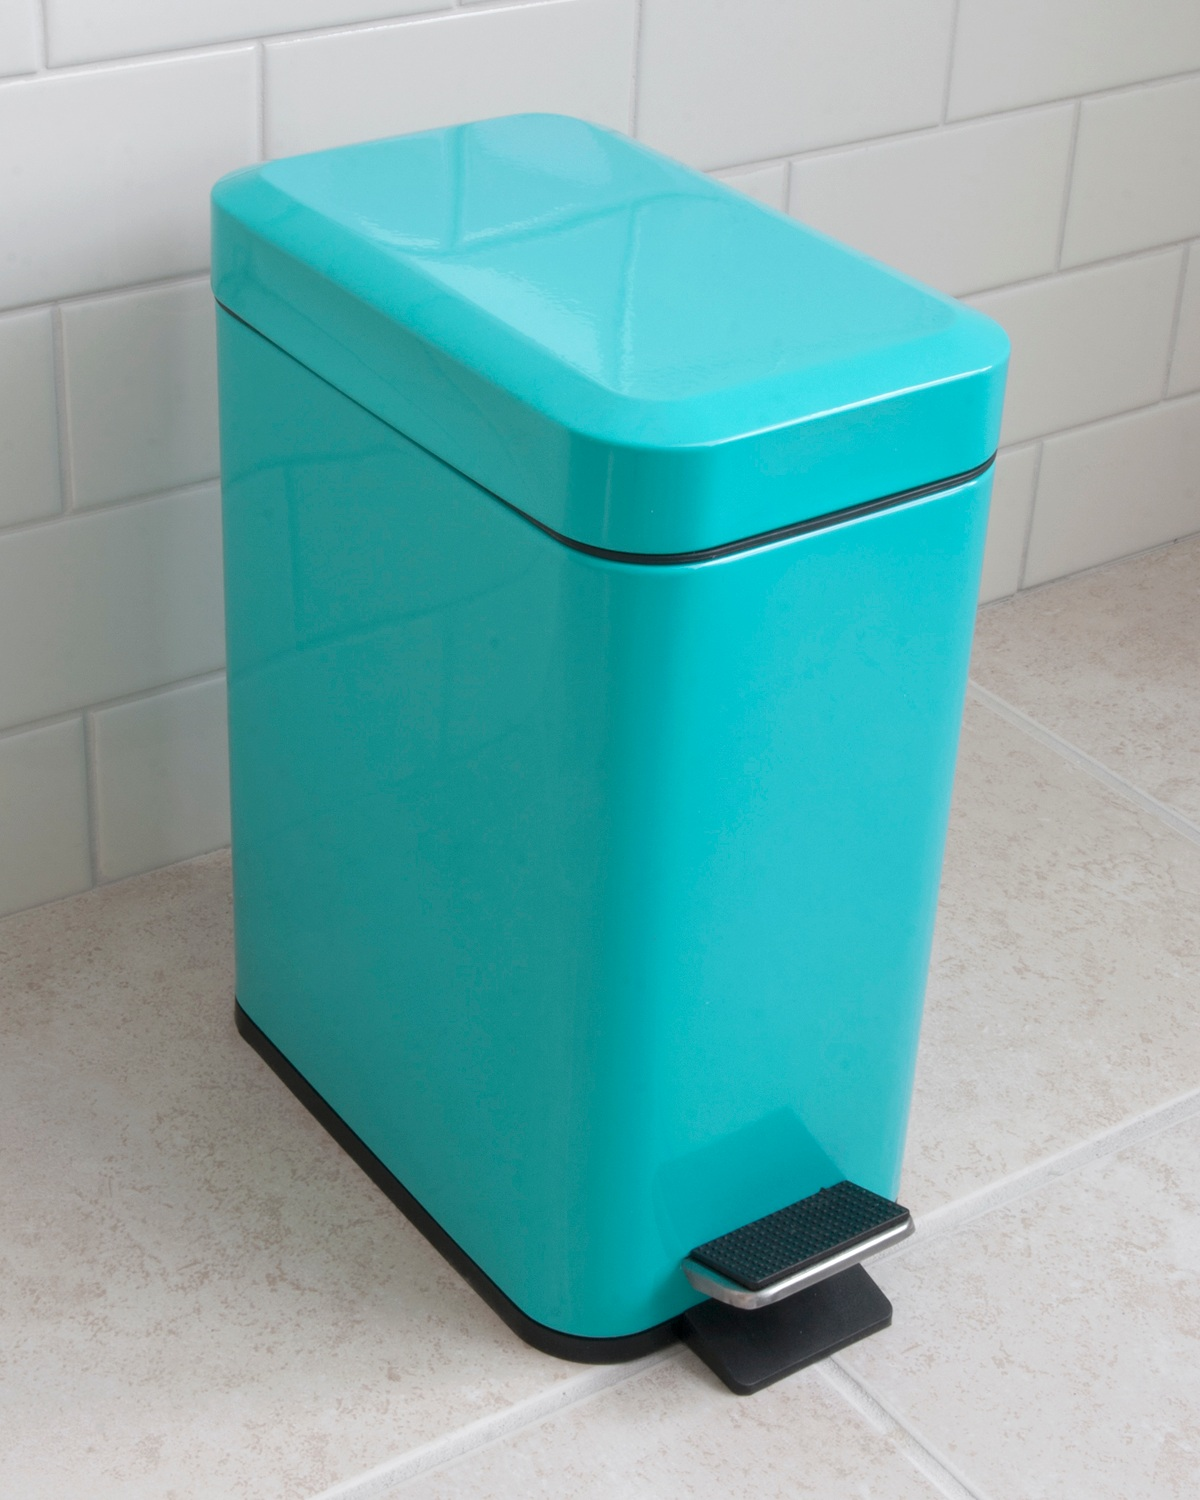 Wastebaskets - Explore our collection of bathroom wastebaskets.